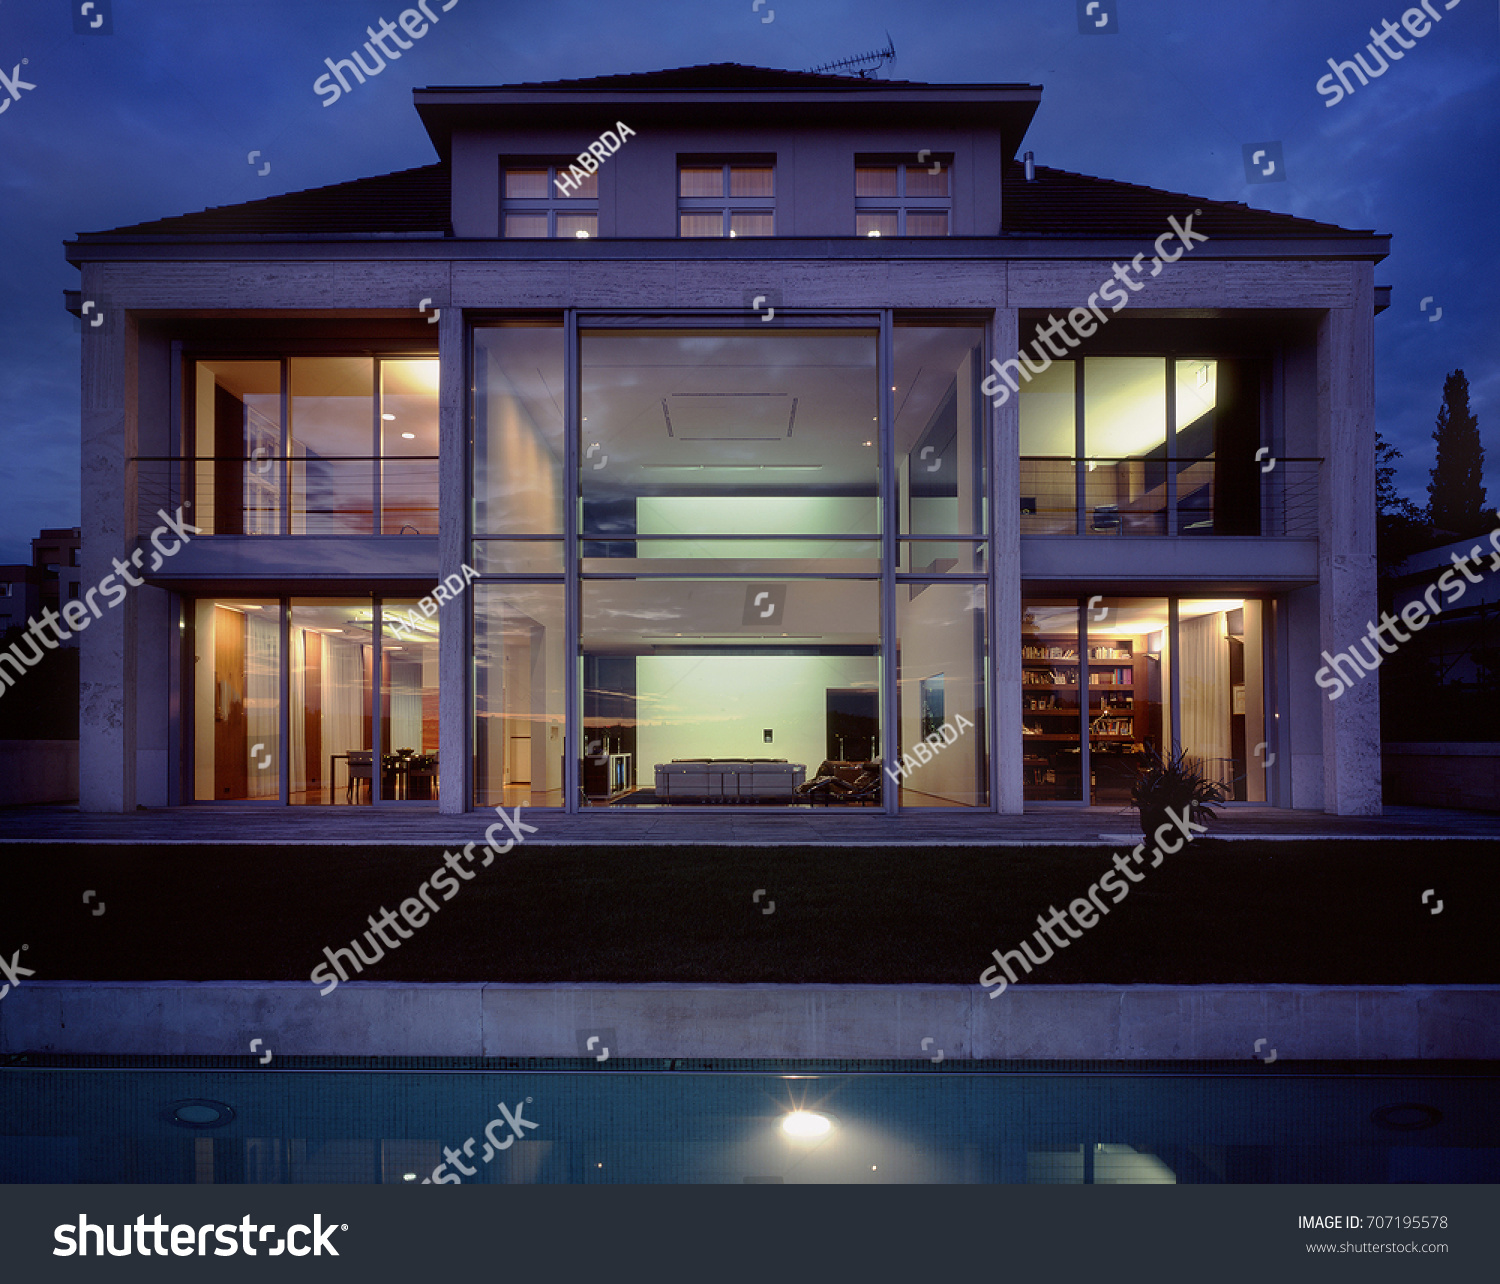 home swimming pools at night. Large Family House Swimming Pool Night Stock Photo (Royalty Free) 707195578 - Shutterstock Home Pools At